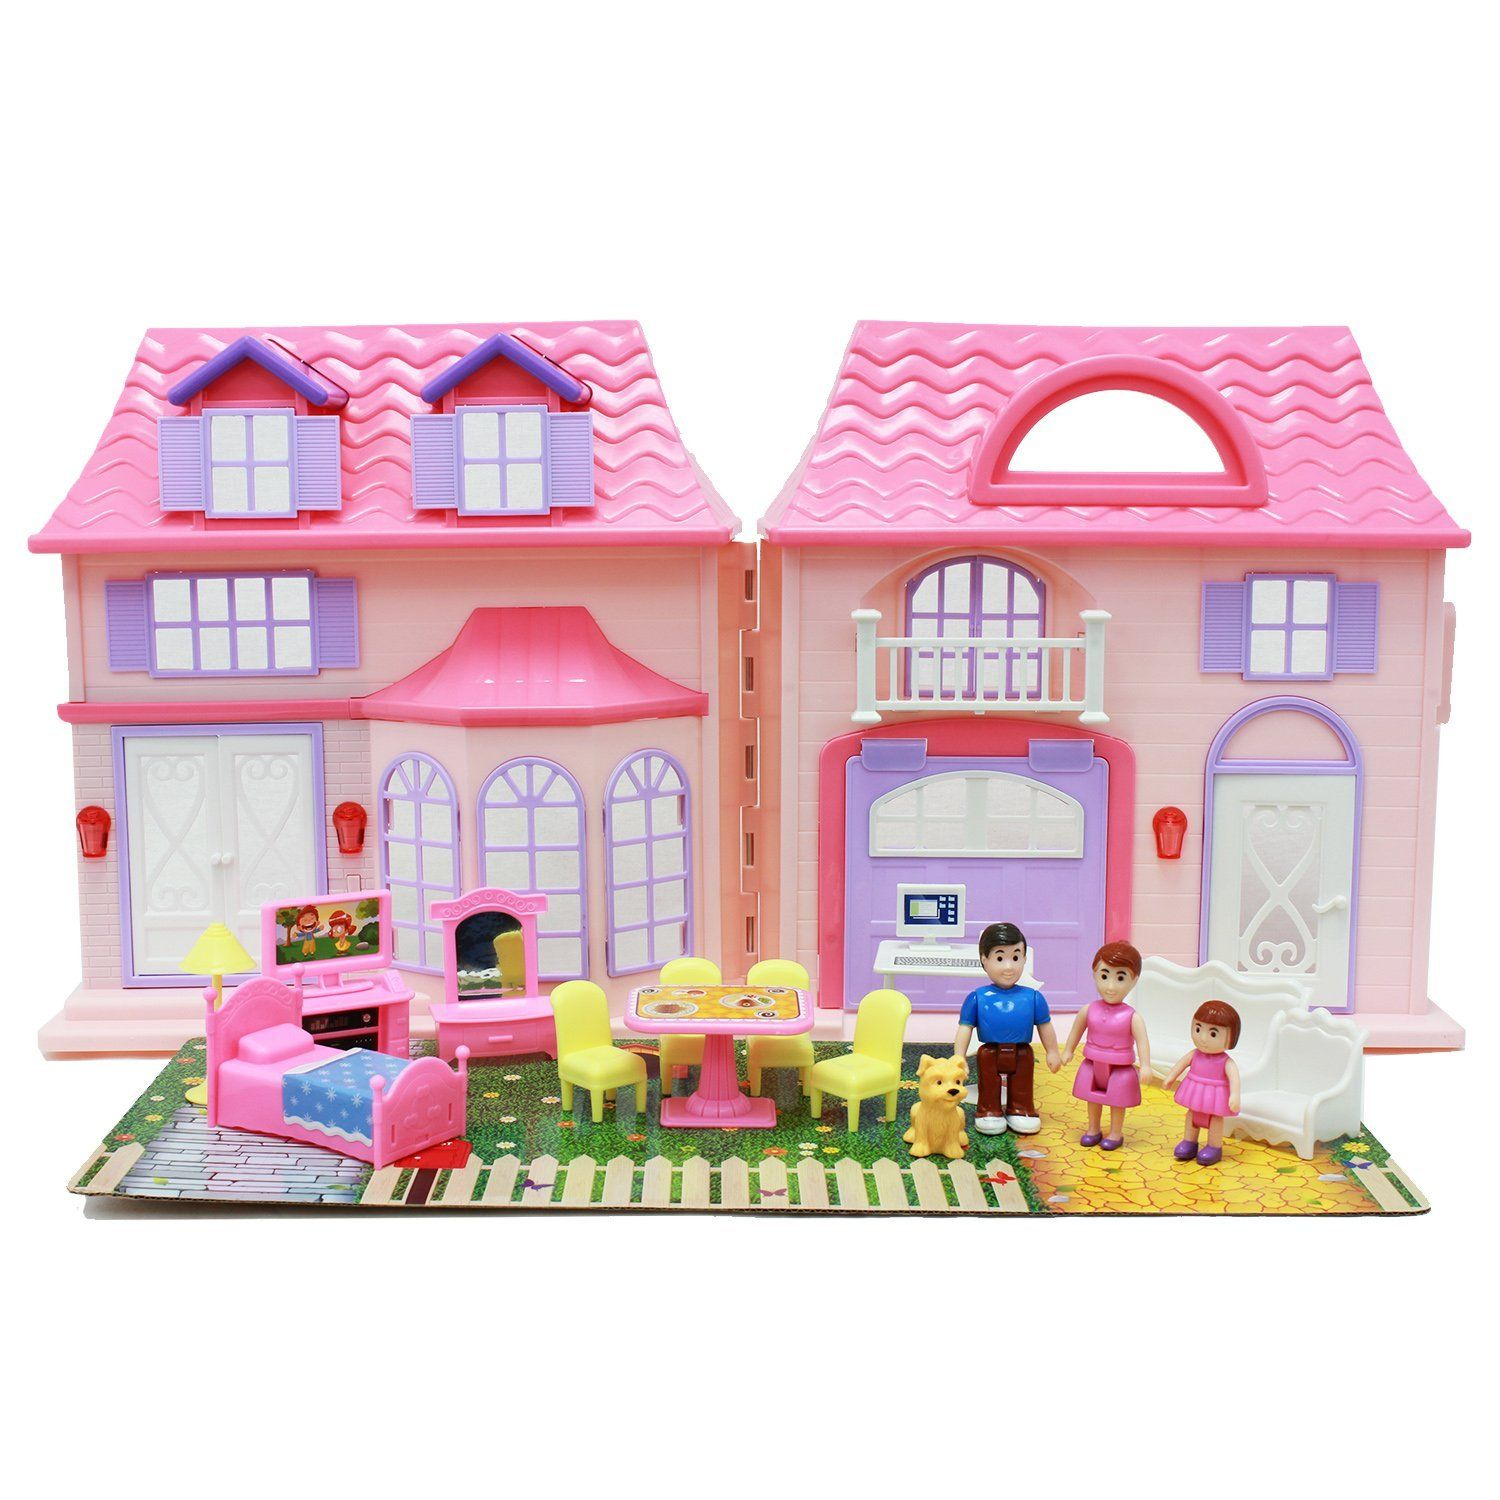 Boley Play Pretend Doll House Toy   21 Pc Collapsible Dollhouse, A Perfect  Girls Toy With Little Kitchen Accessories And More!